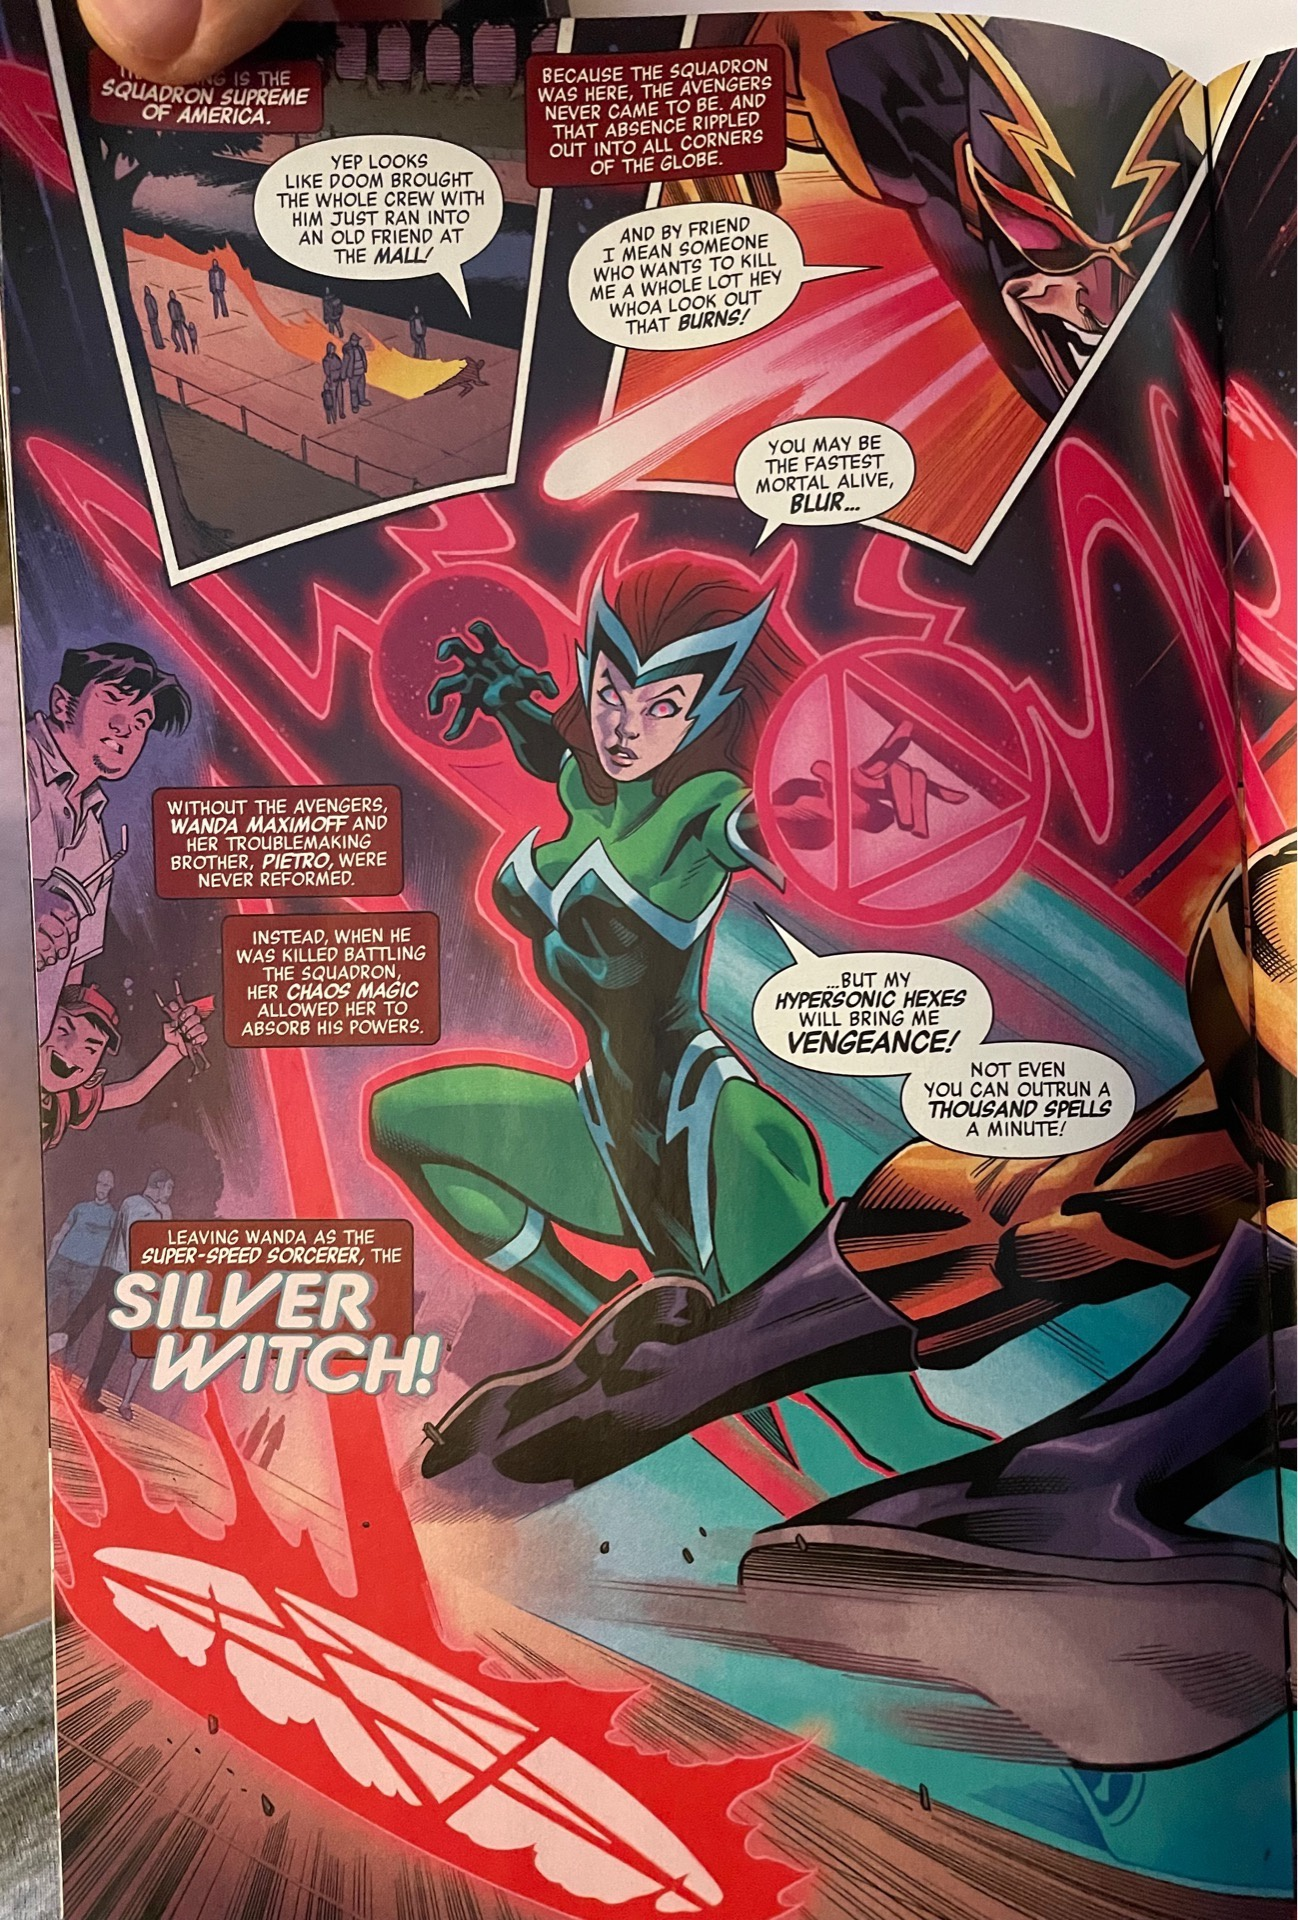 Who is the silver witch in Marvel Comics   Quora